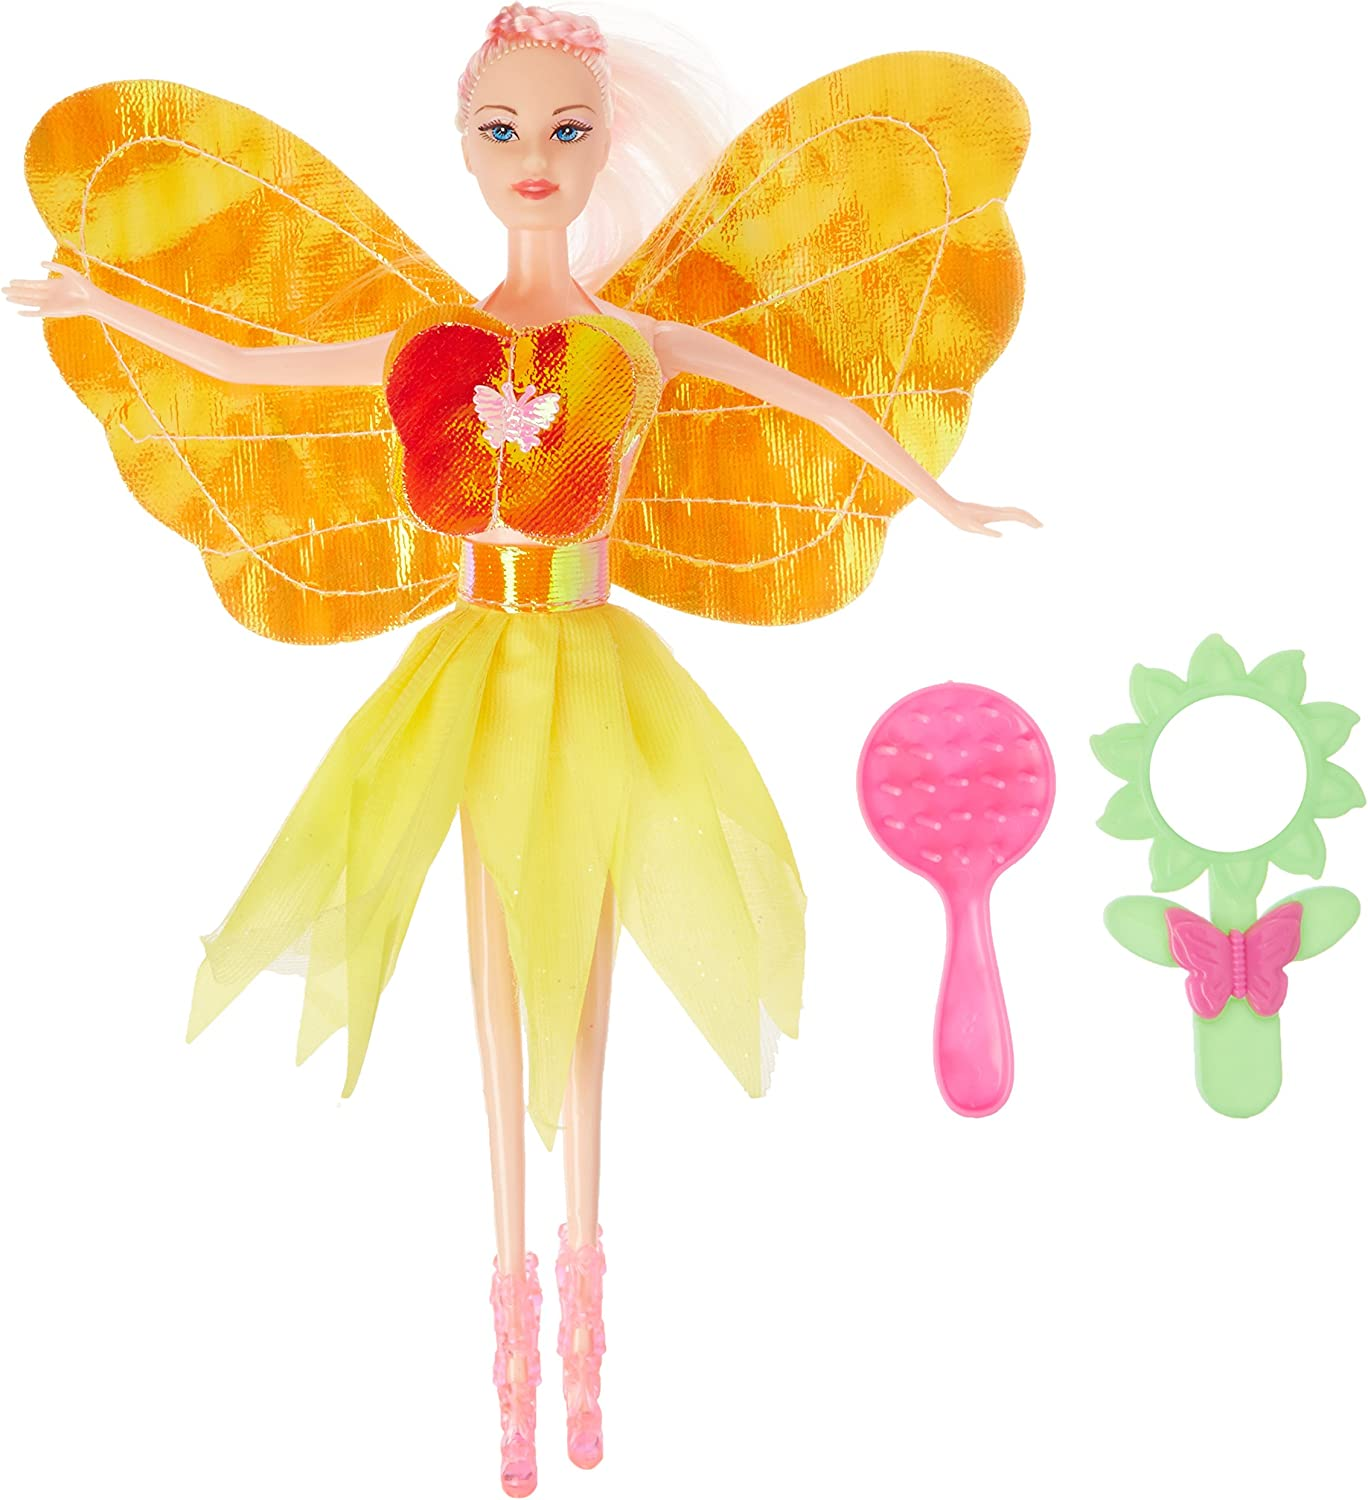 Kole Fashion Doll with Butterfly Dress & Accessories